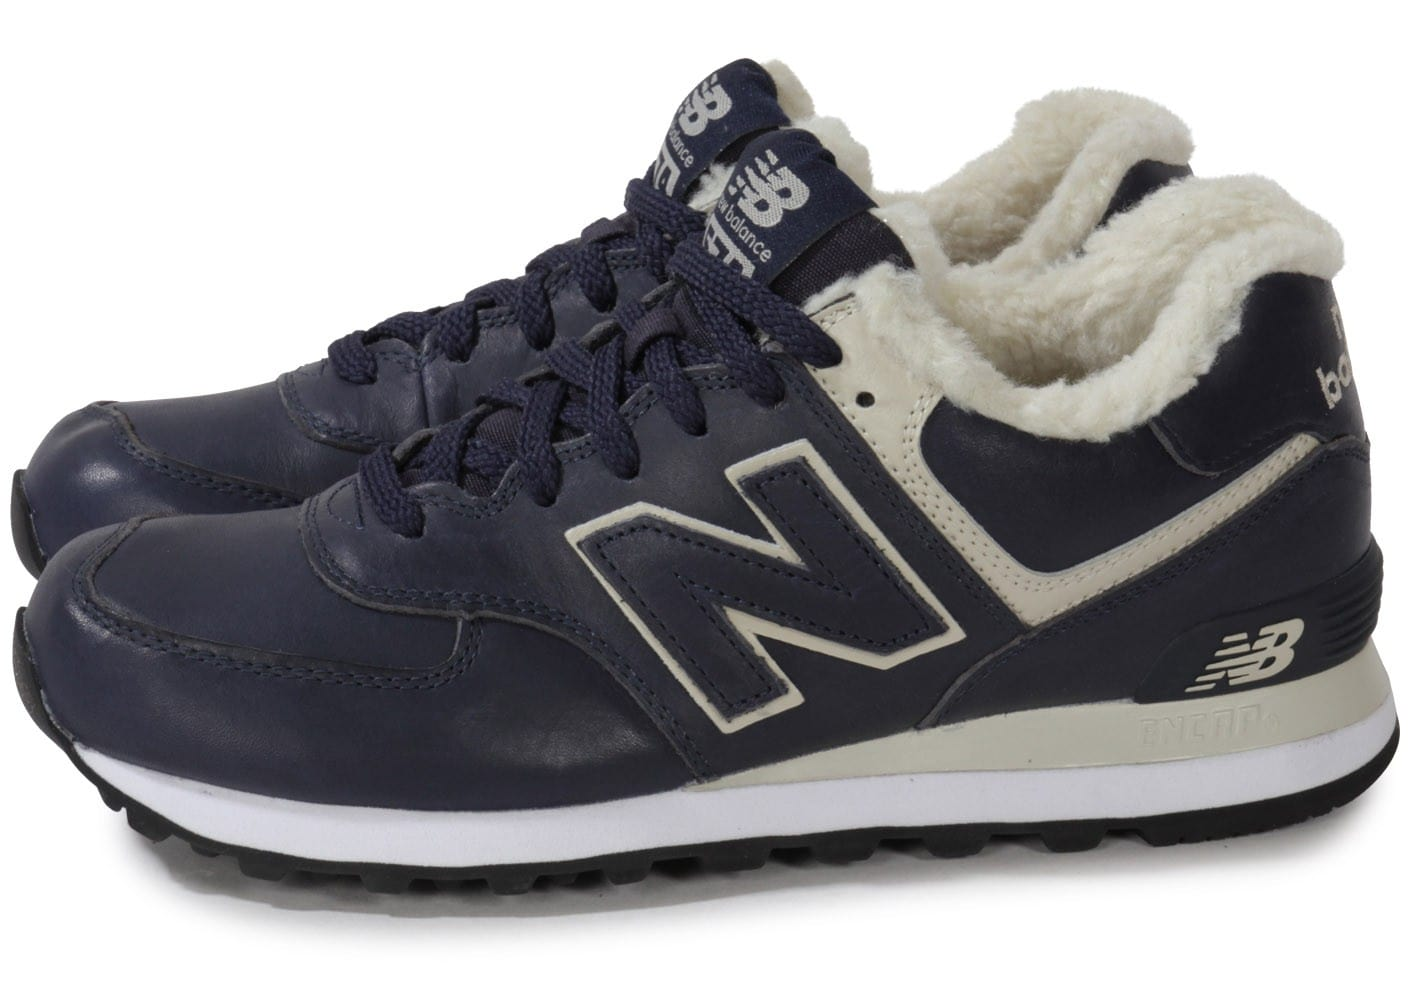 new balance ml574 nv d cuir bleu marine chaussures homme chausport. Black Bedroom Furniture Sets. Home Design Ideas